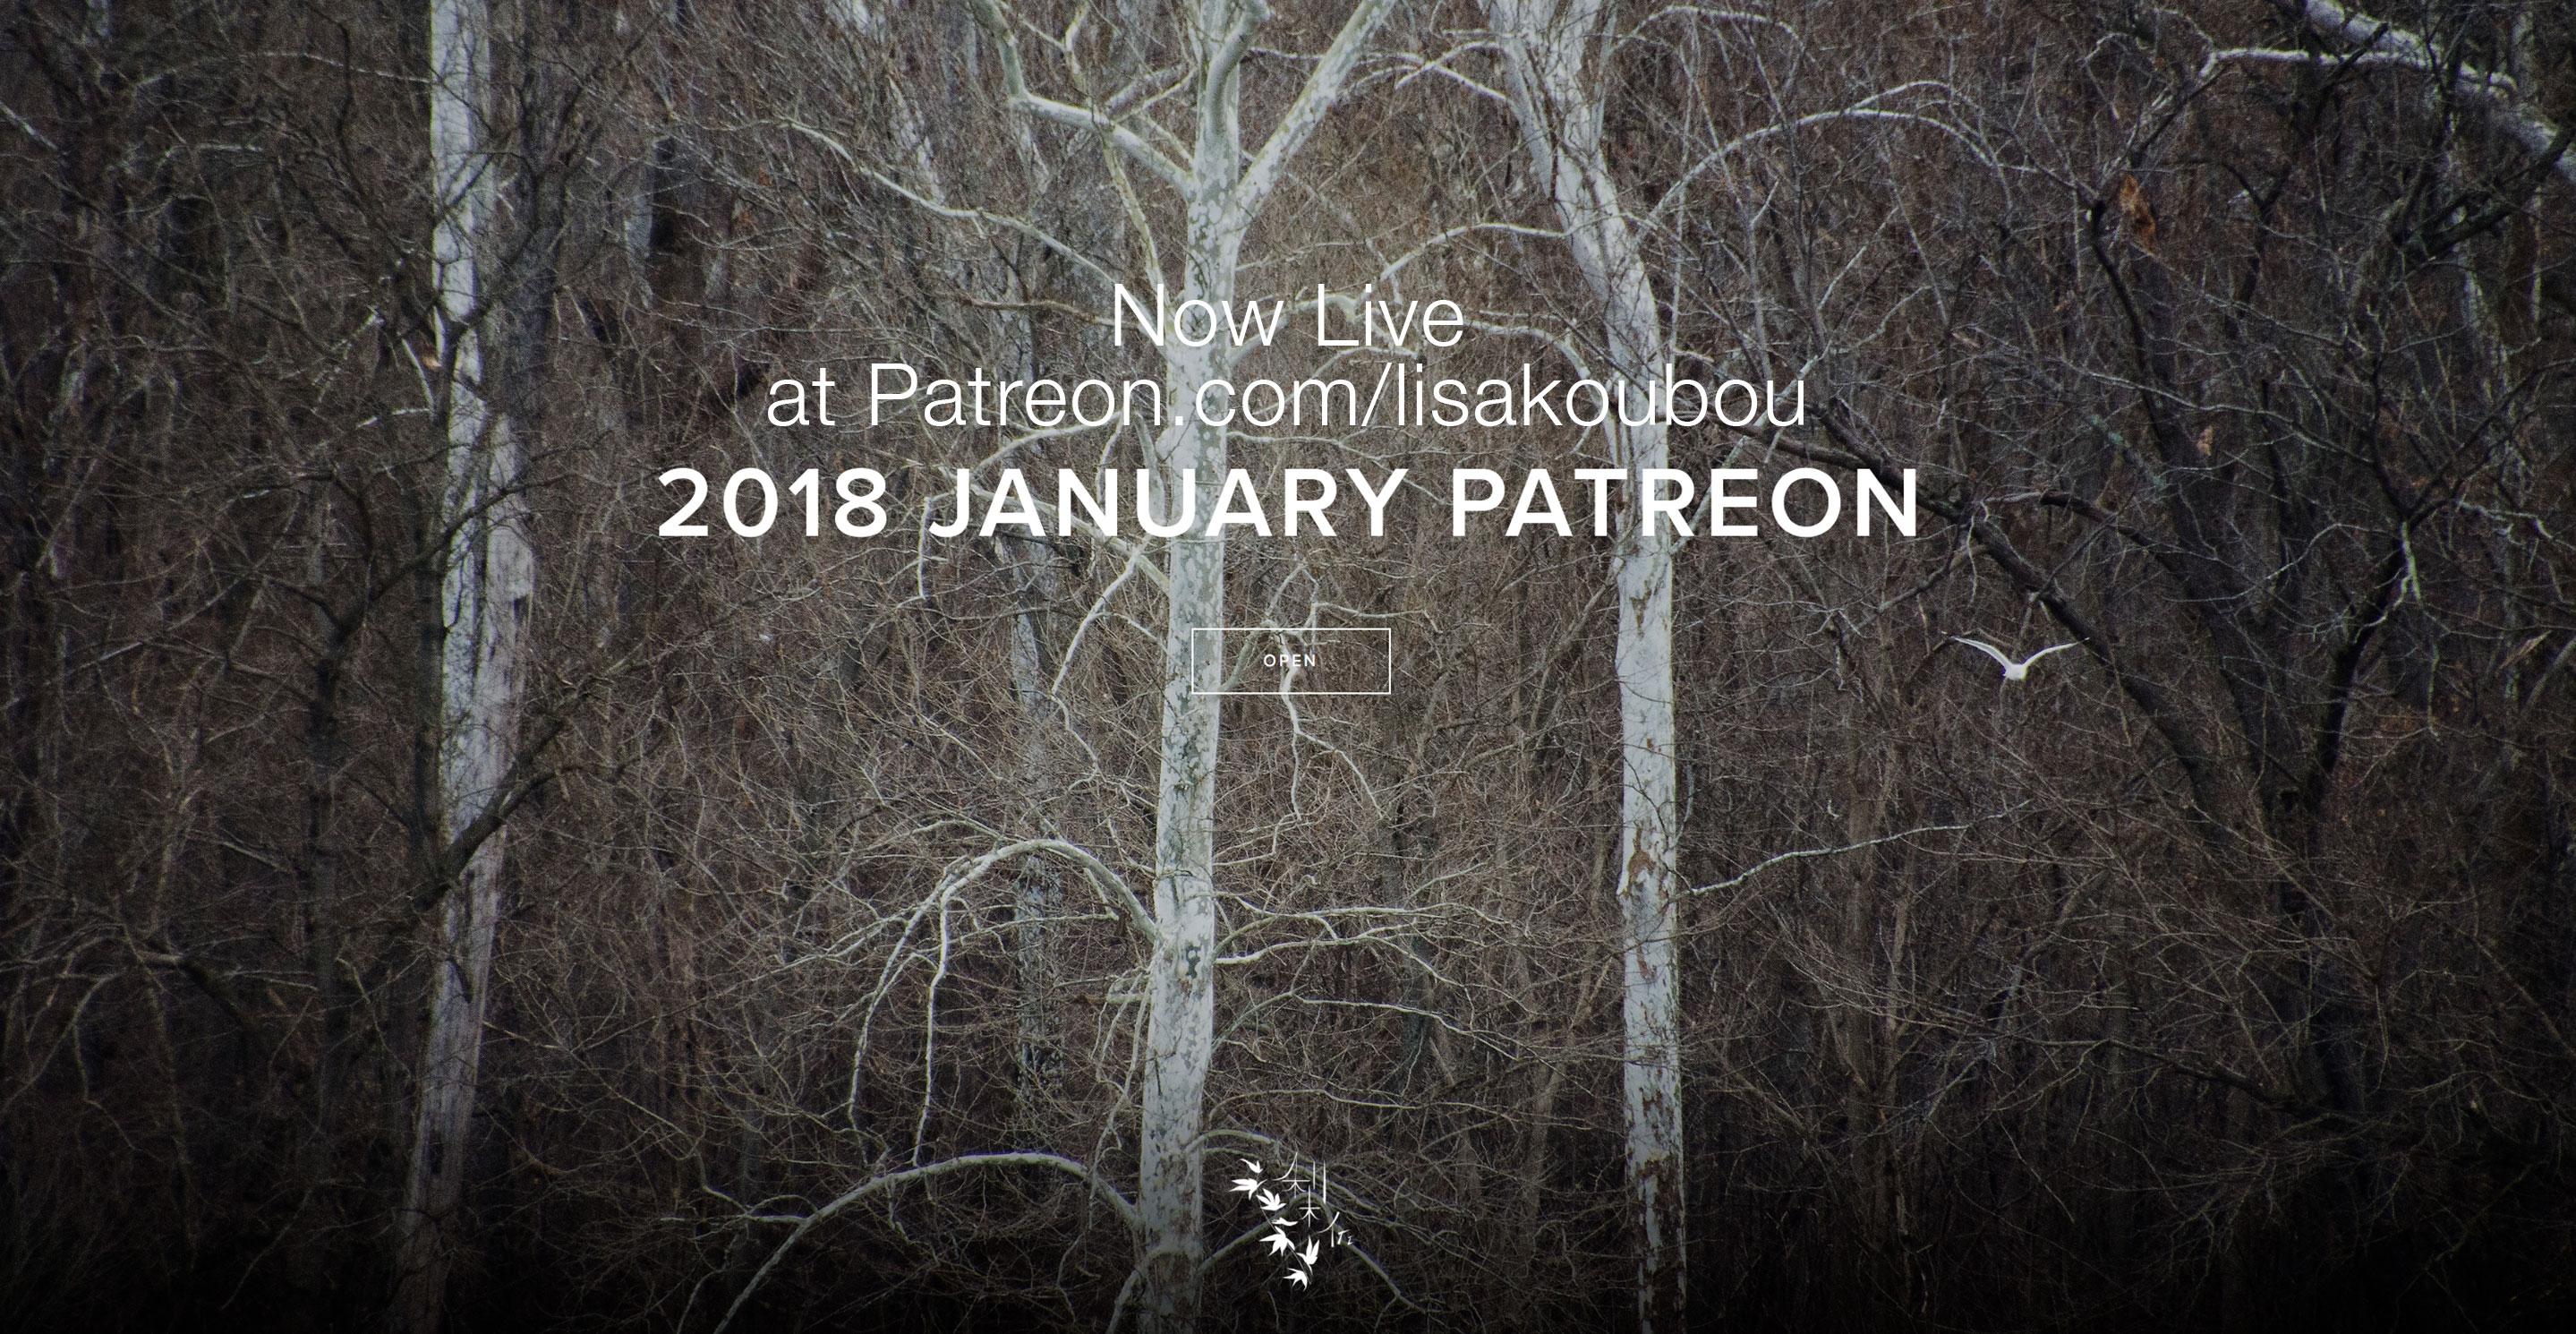 Tree line across from river Patreon image